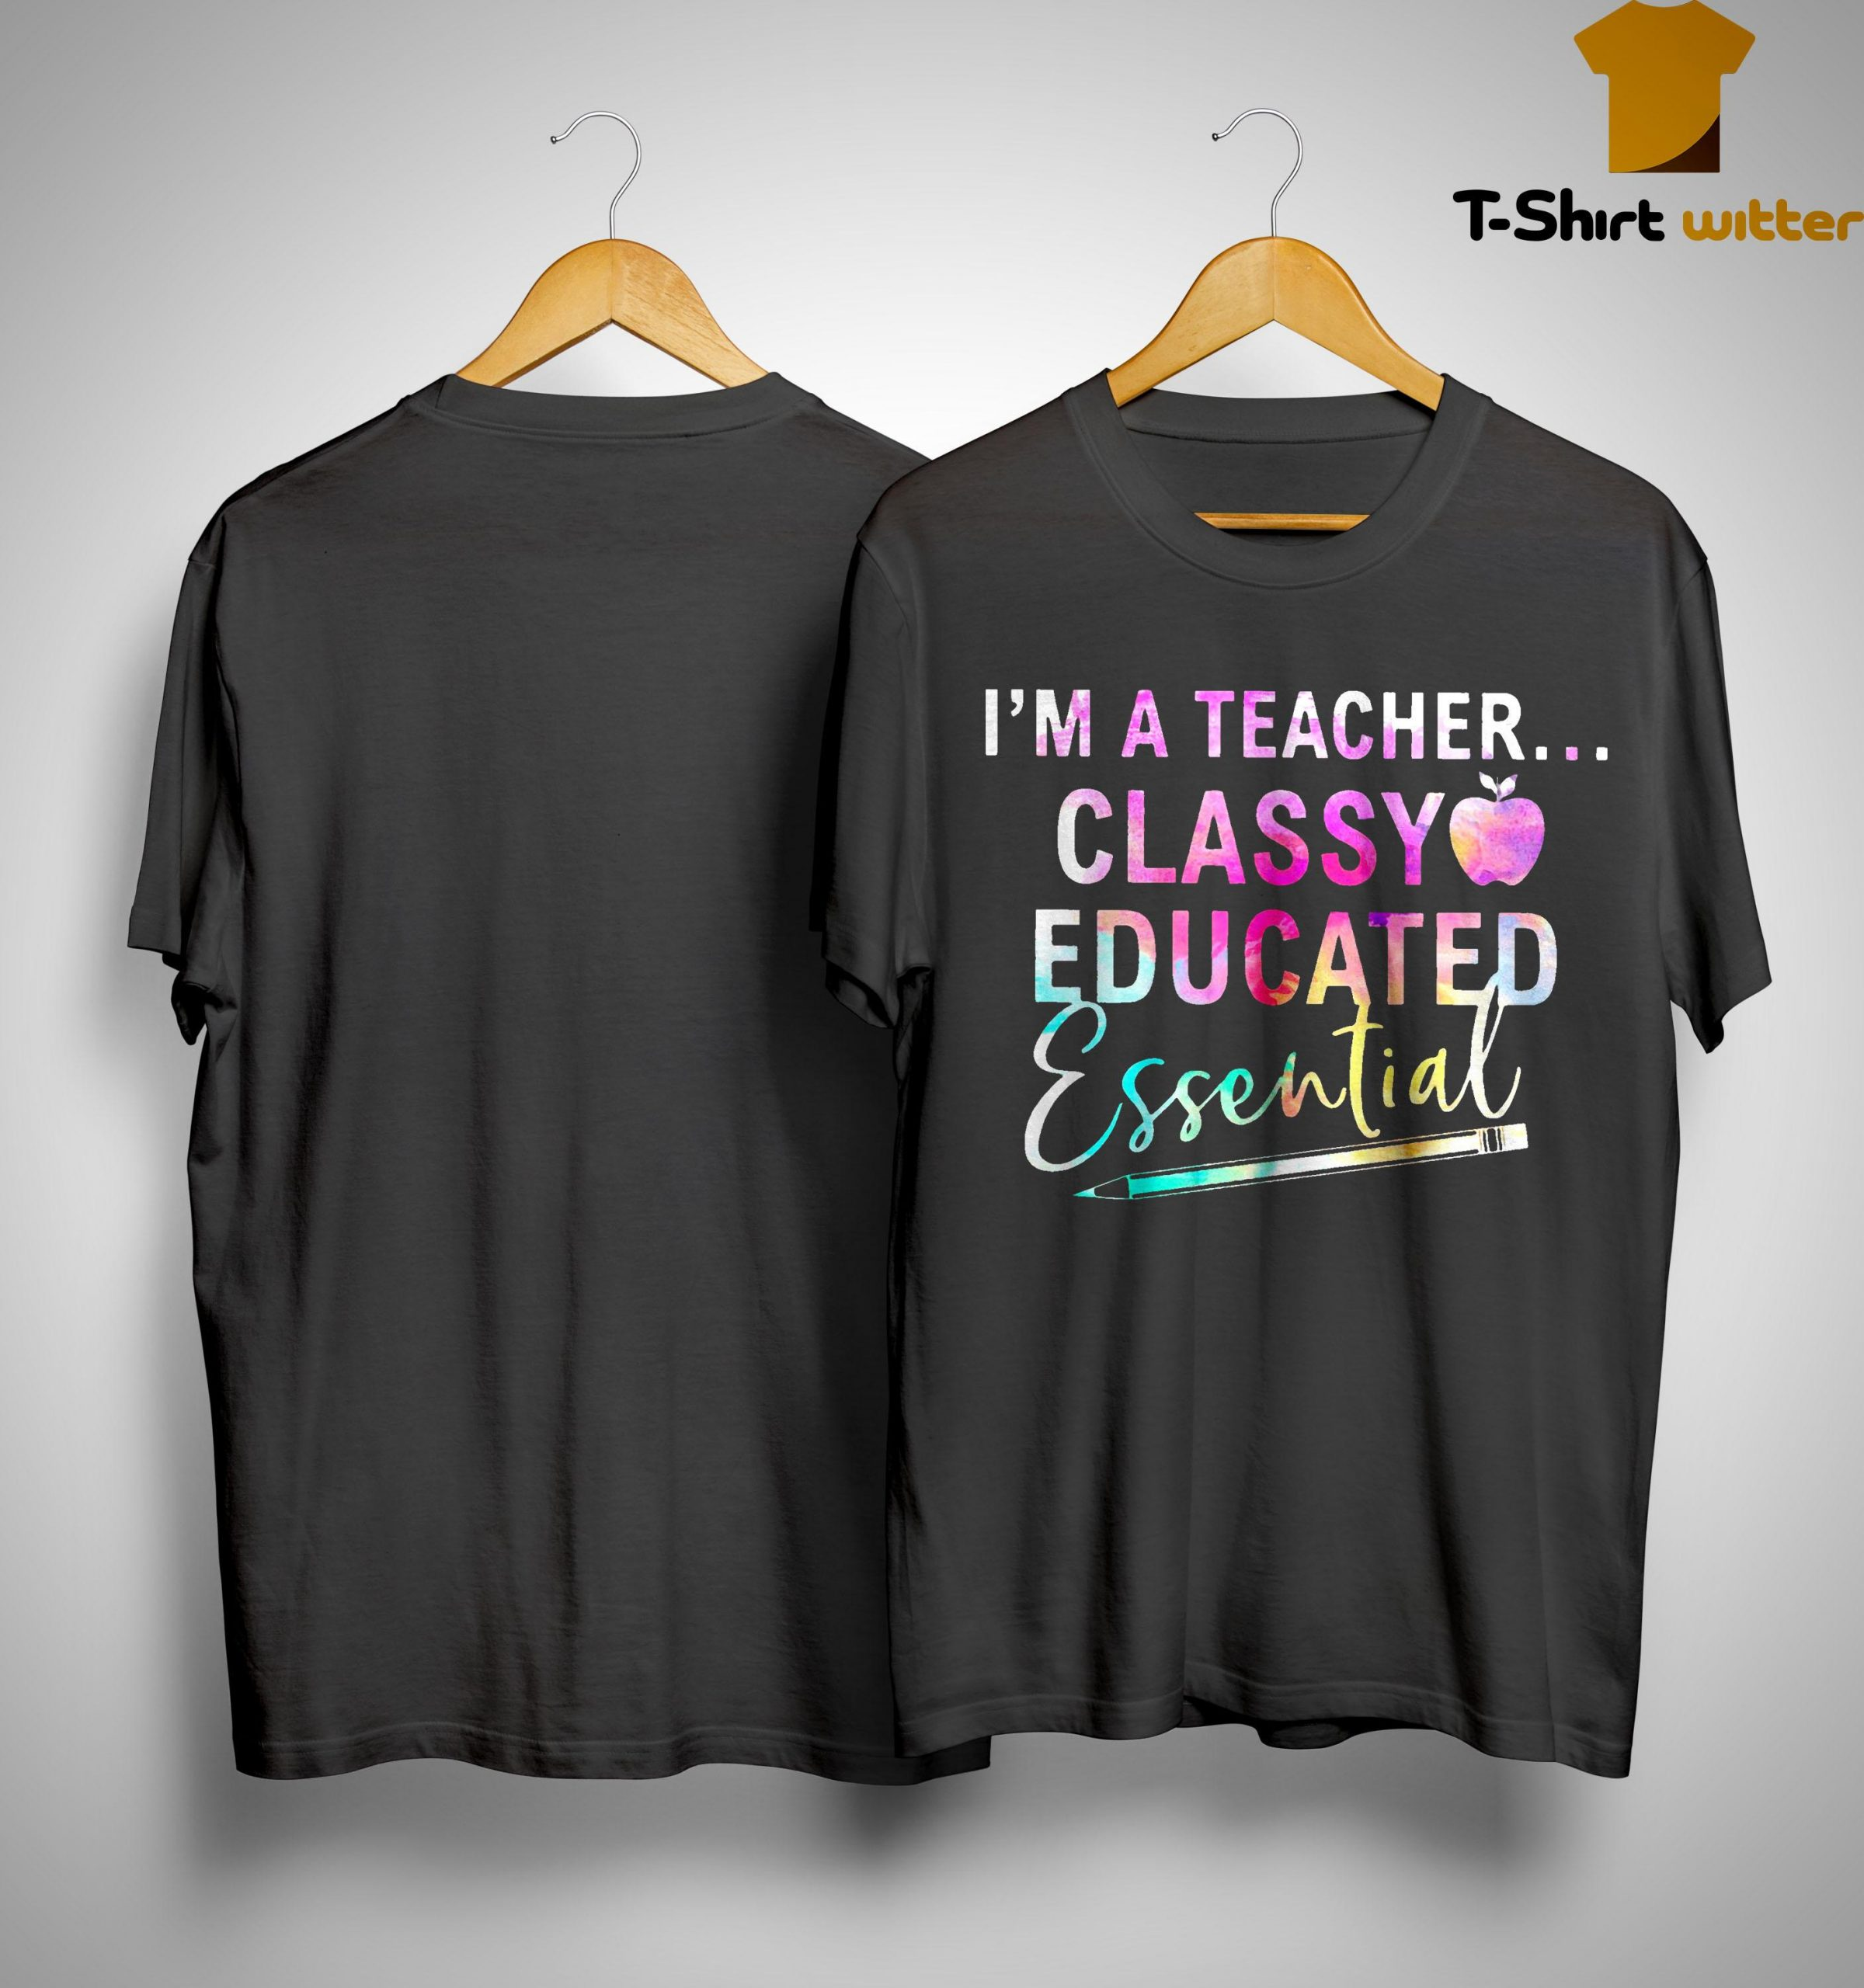 I'm A Teacher Classy Educated Essential Shirt